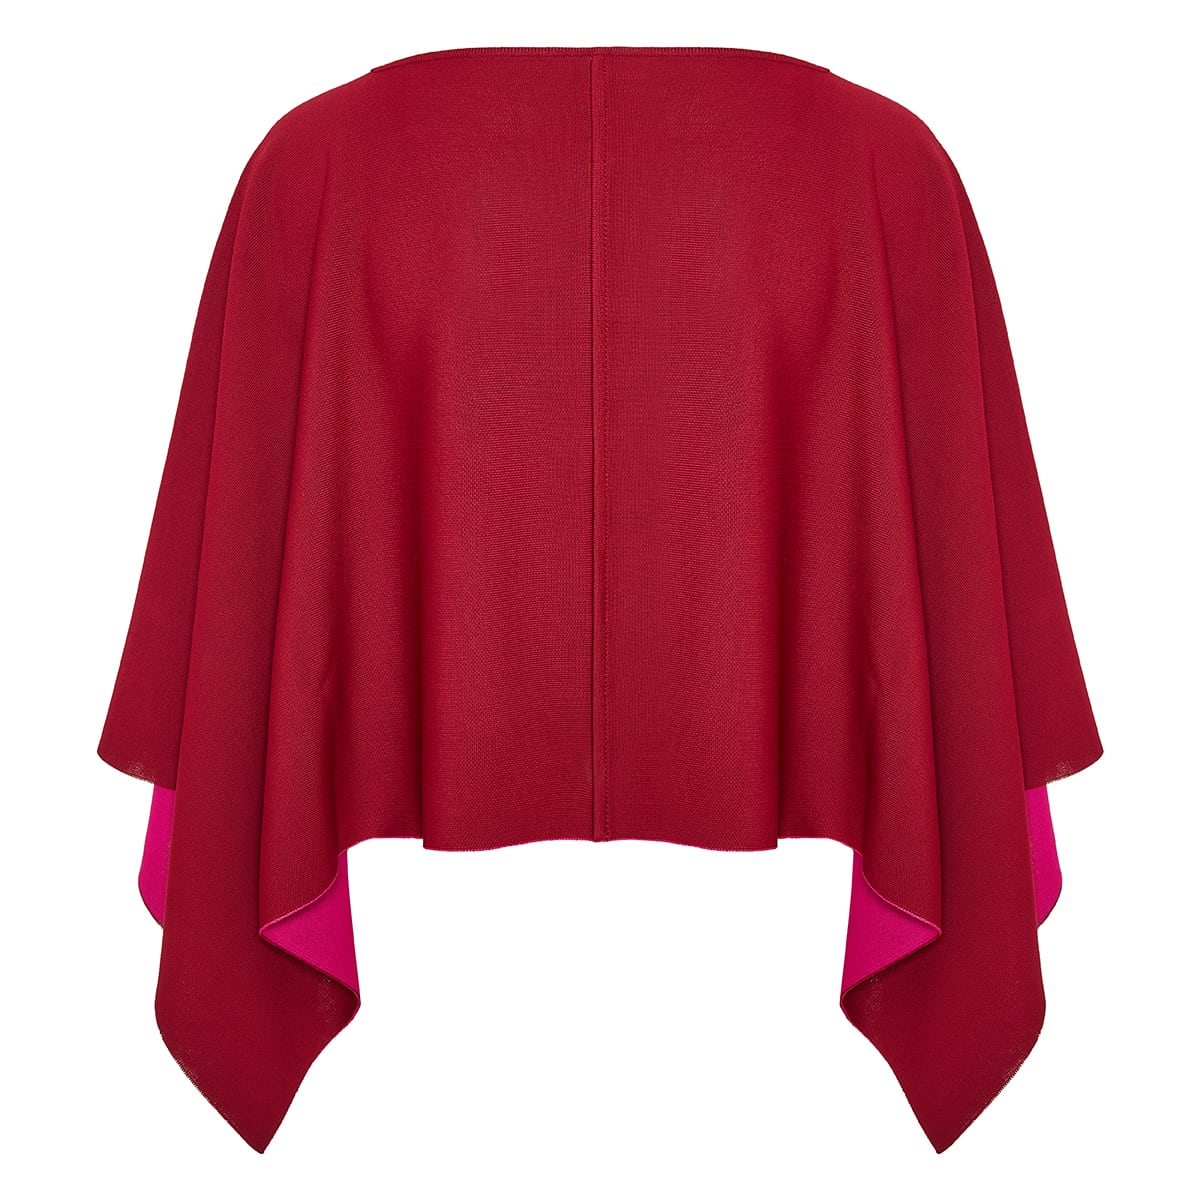 Compact-knit asymmetric cape